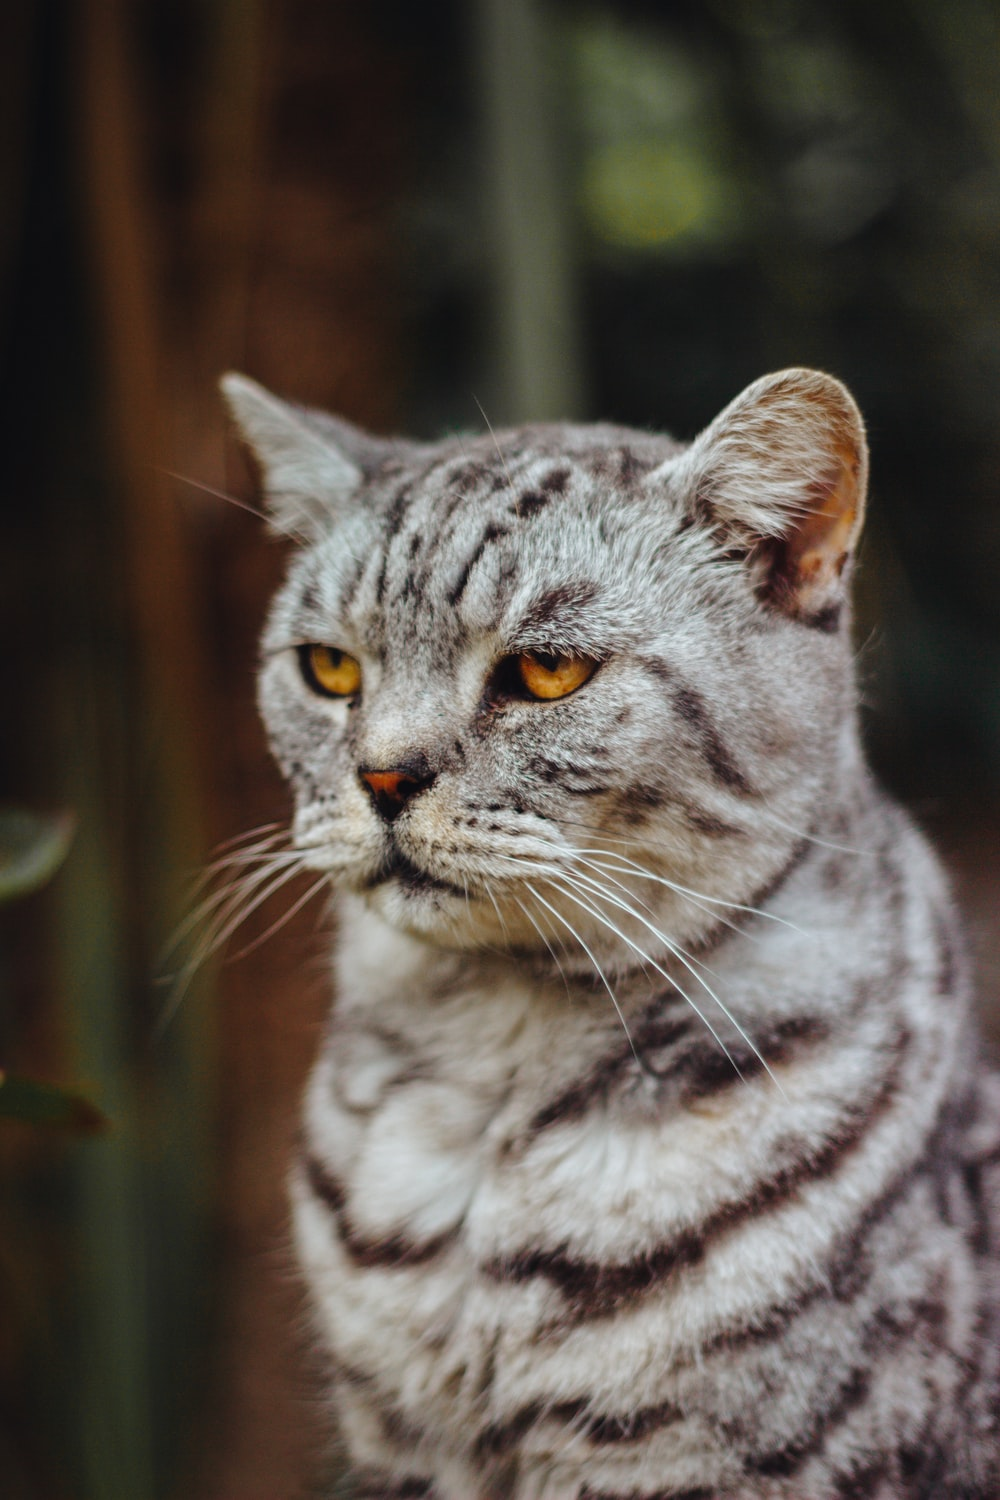 20 cat pictures images hd download free photos on unsplash